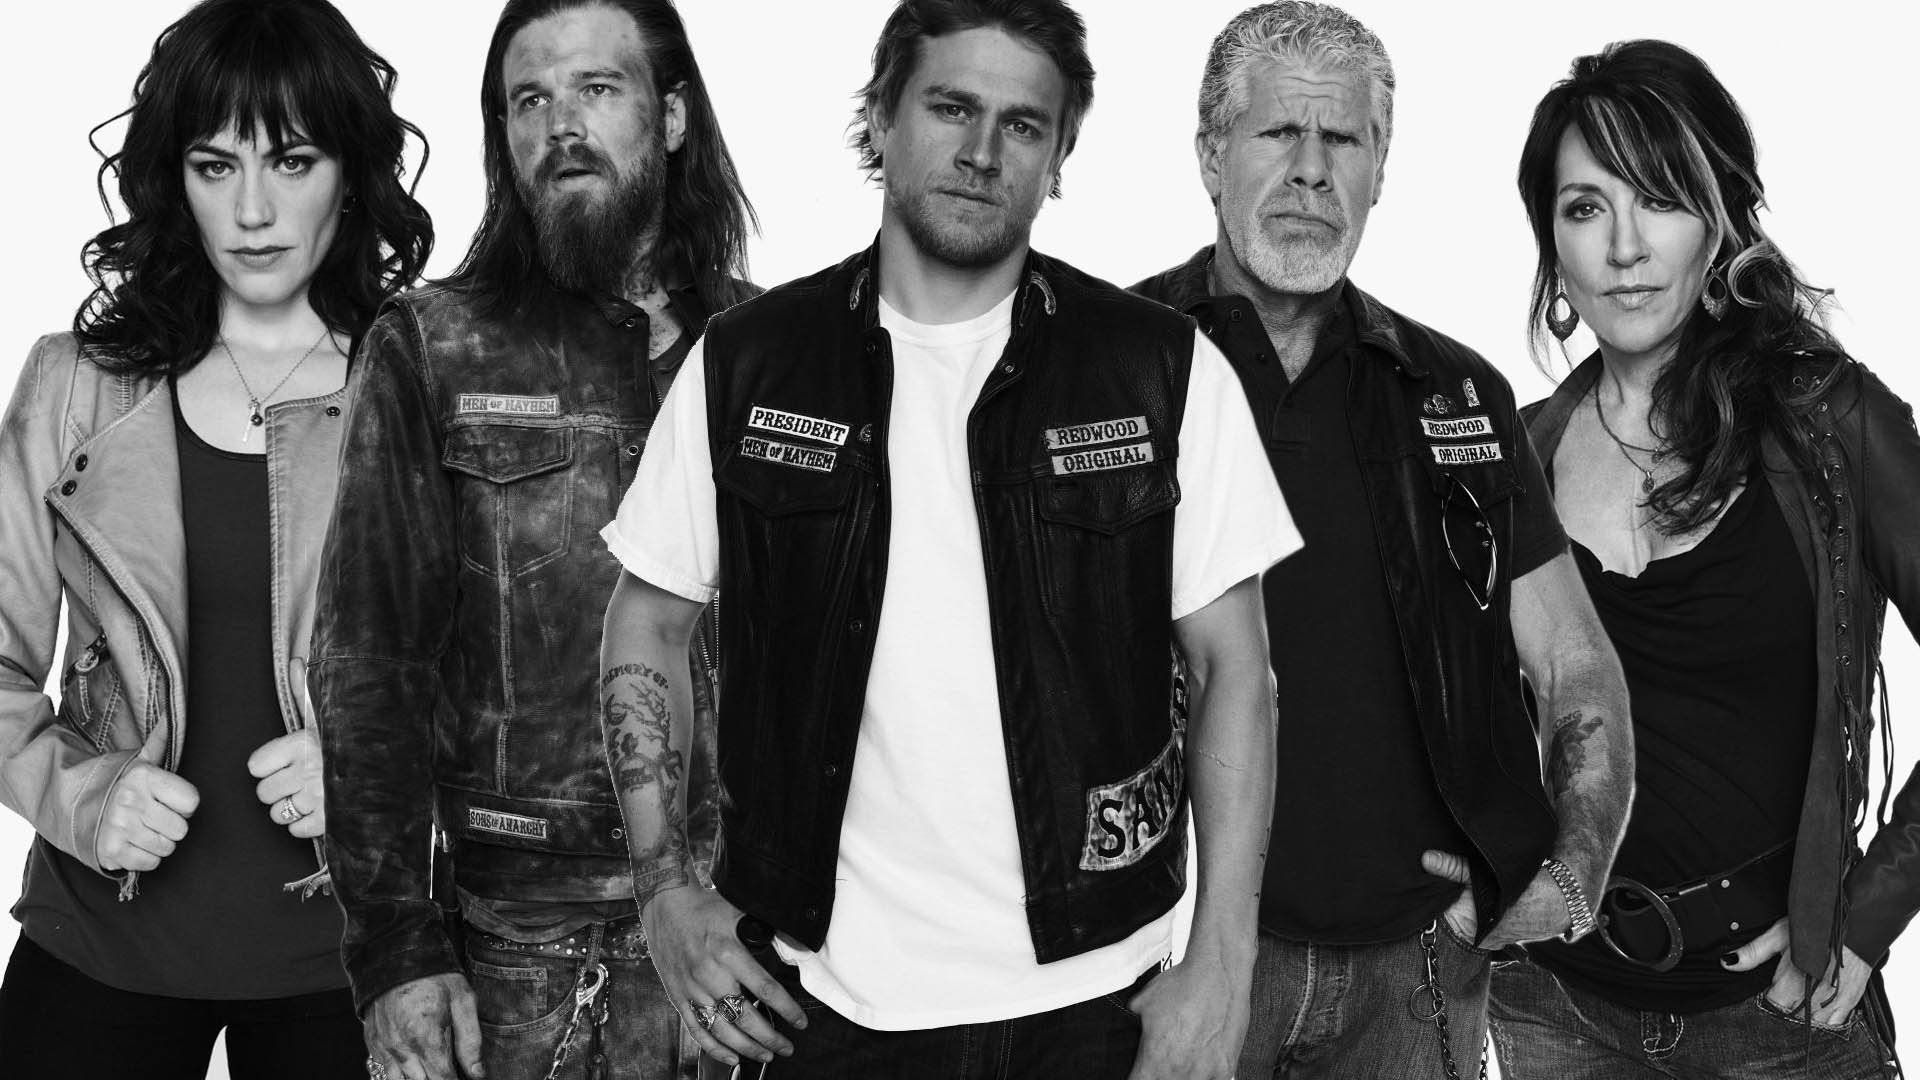 Sons Of Anarchy Wallpaper Walldevil Best Free Hd Desktop And